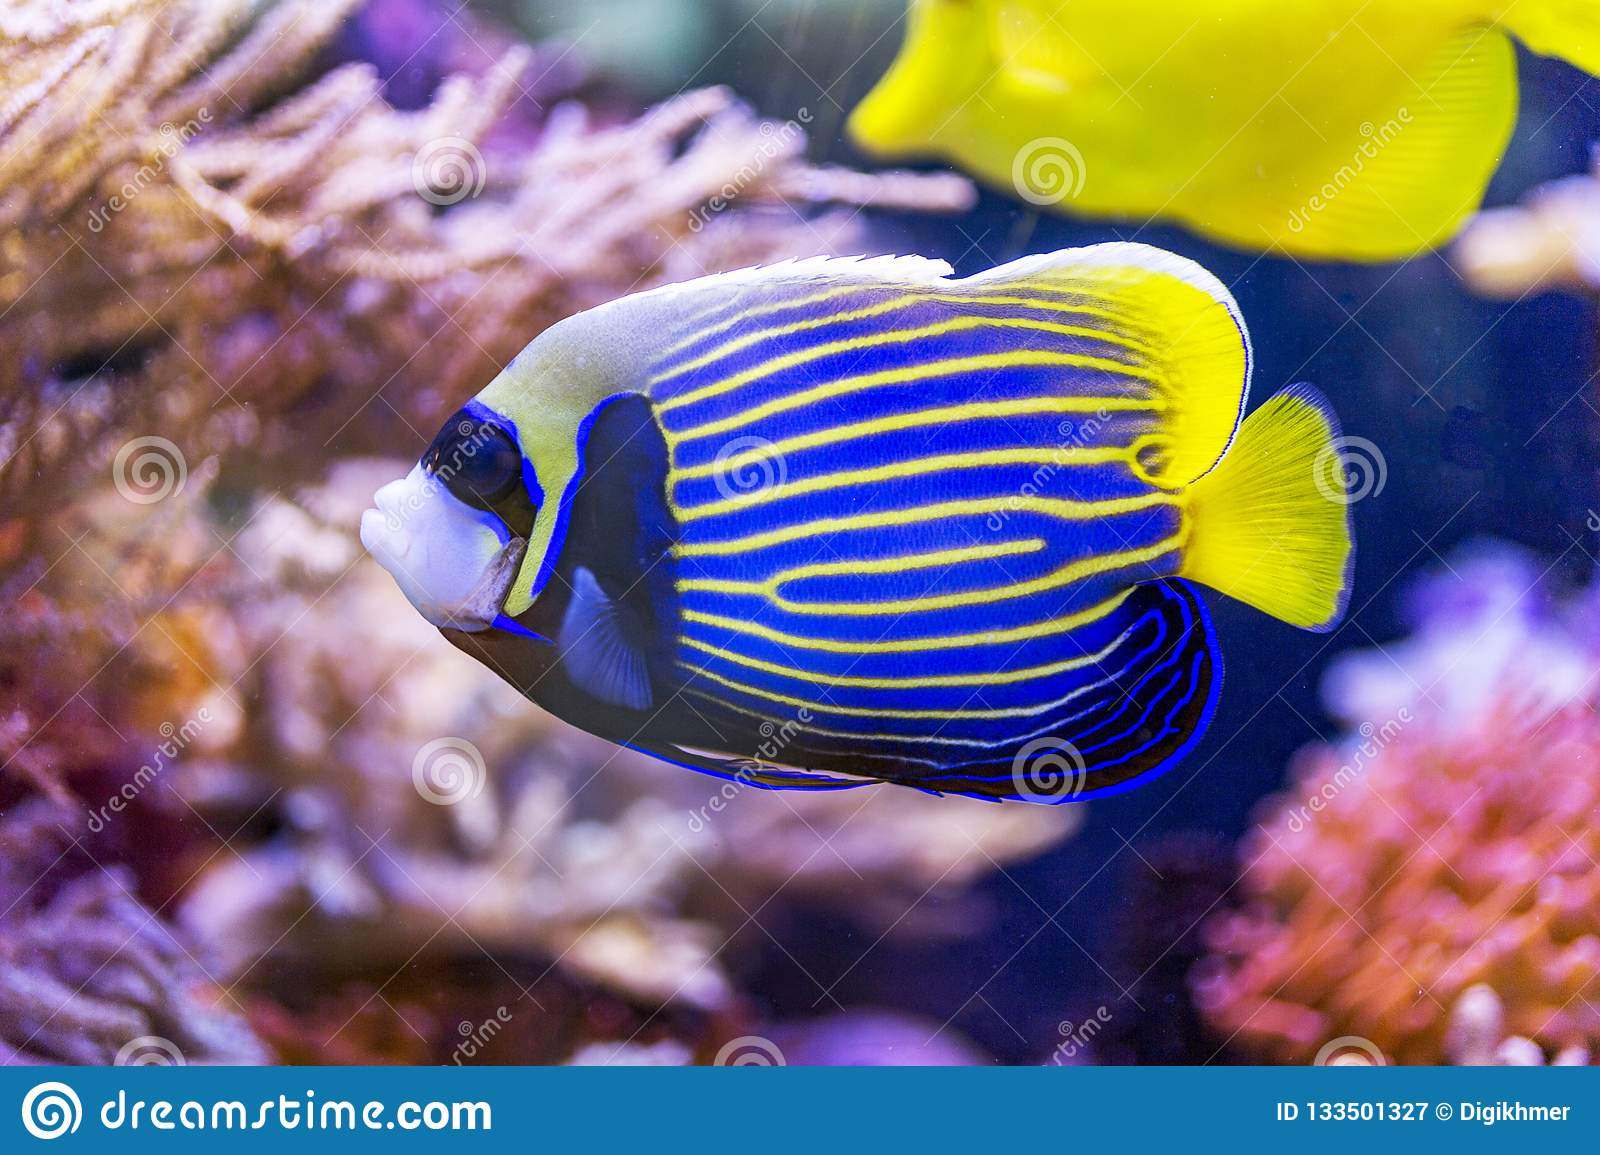 Yellow and blue fish angel